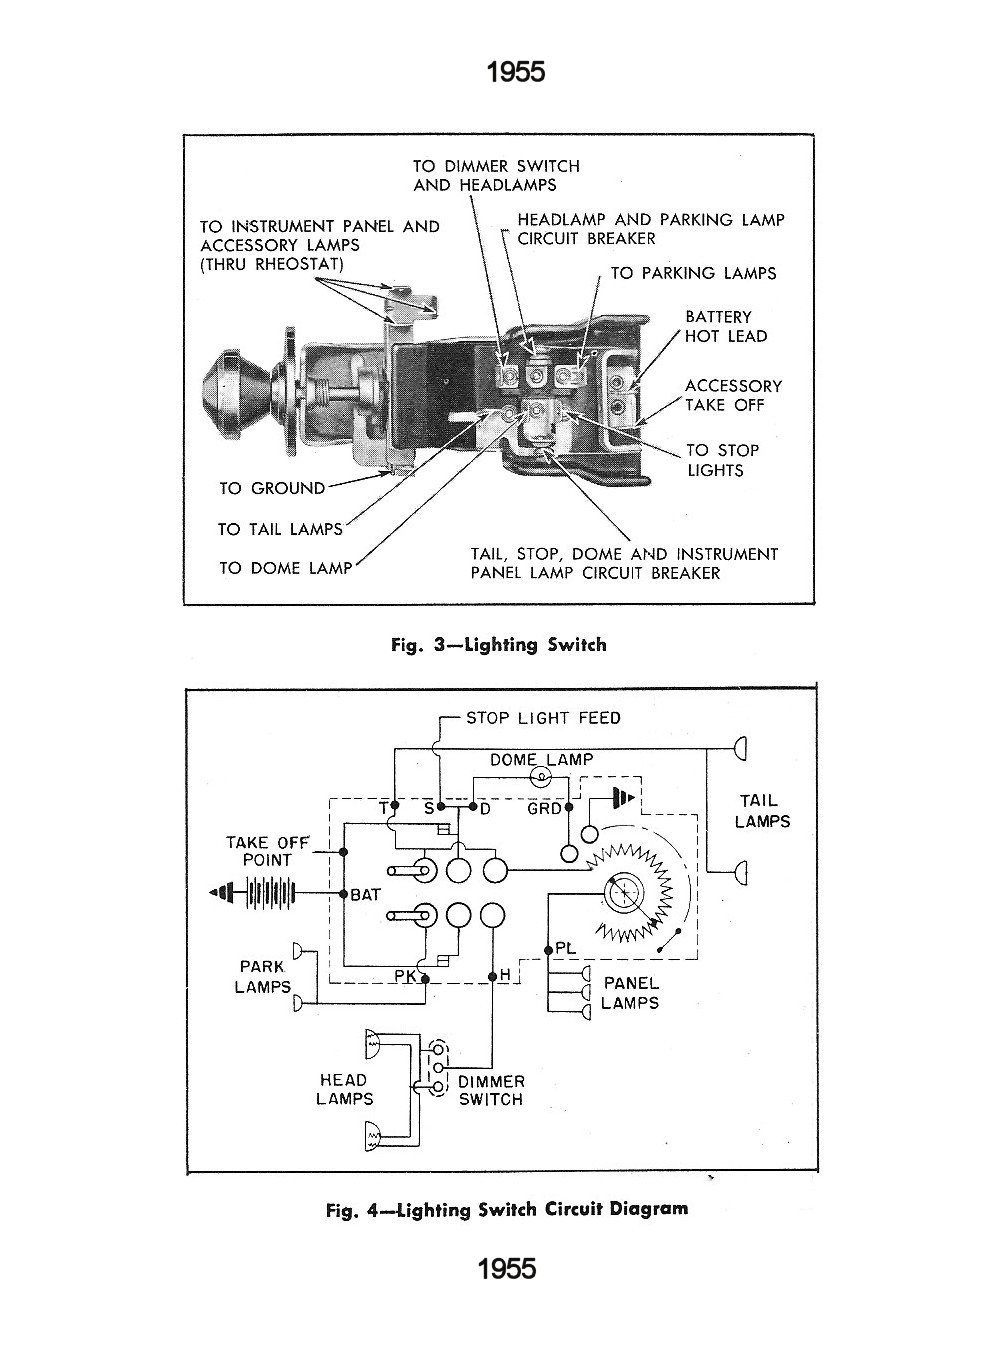 Wondrous 1984 Chevy C10 Fuse Box Diagram Basic Electronics Wiring Diagram Wiring Cloud Peadfoxcilixyz